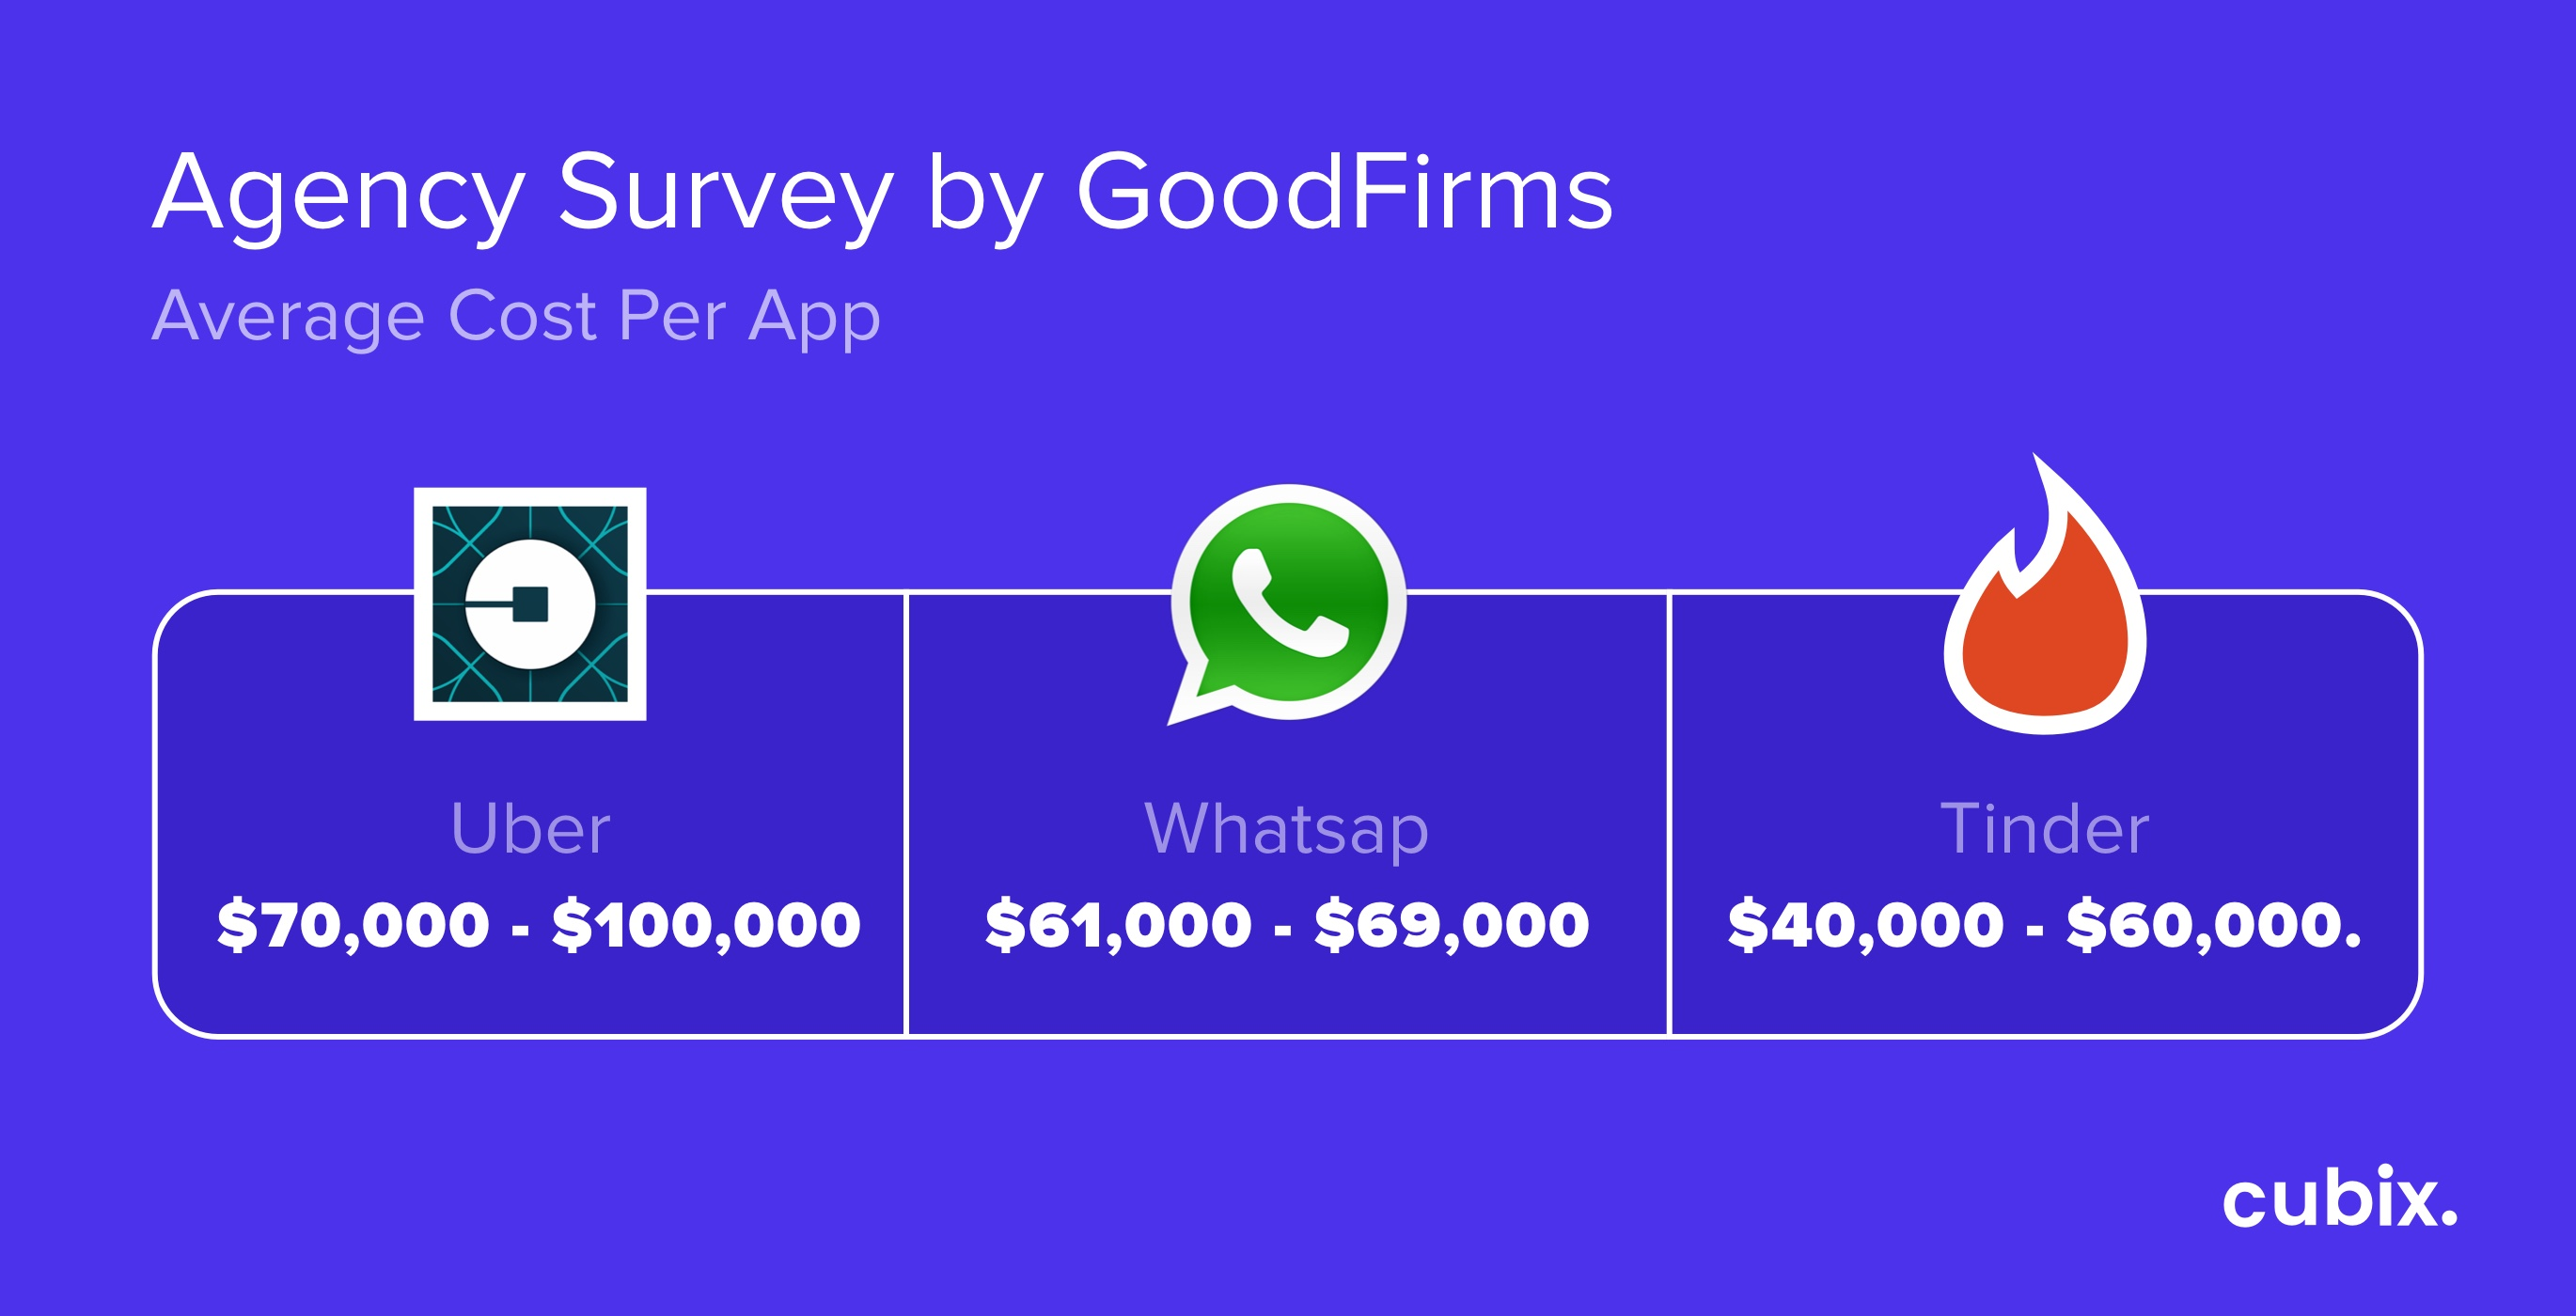 Agency Survey by GoodFirms